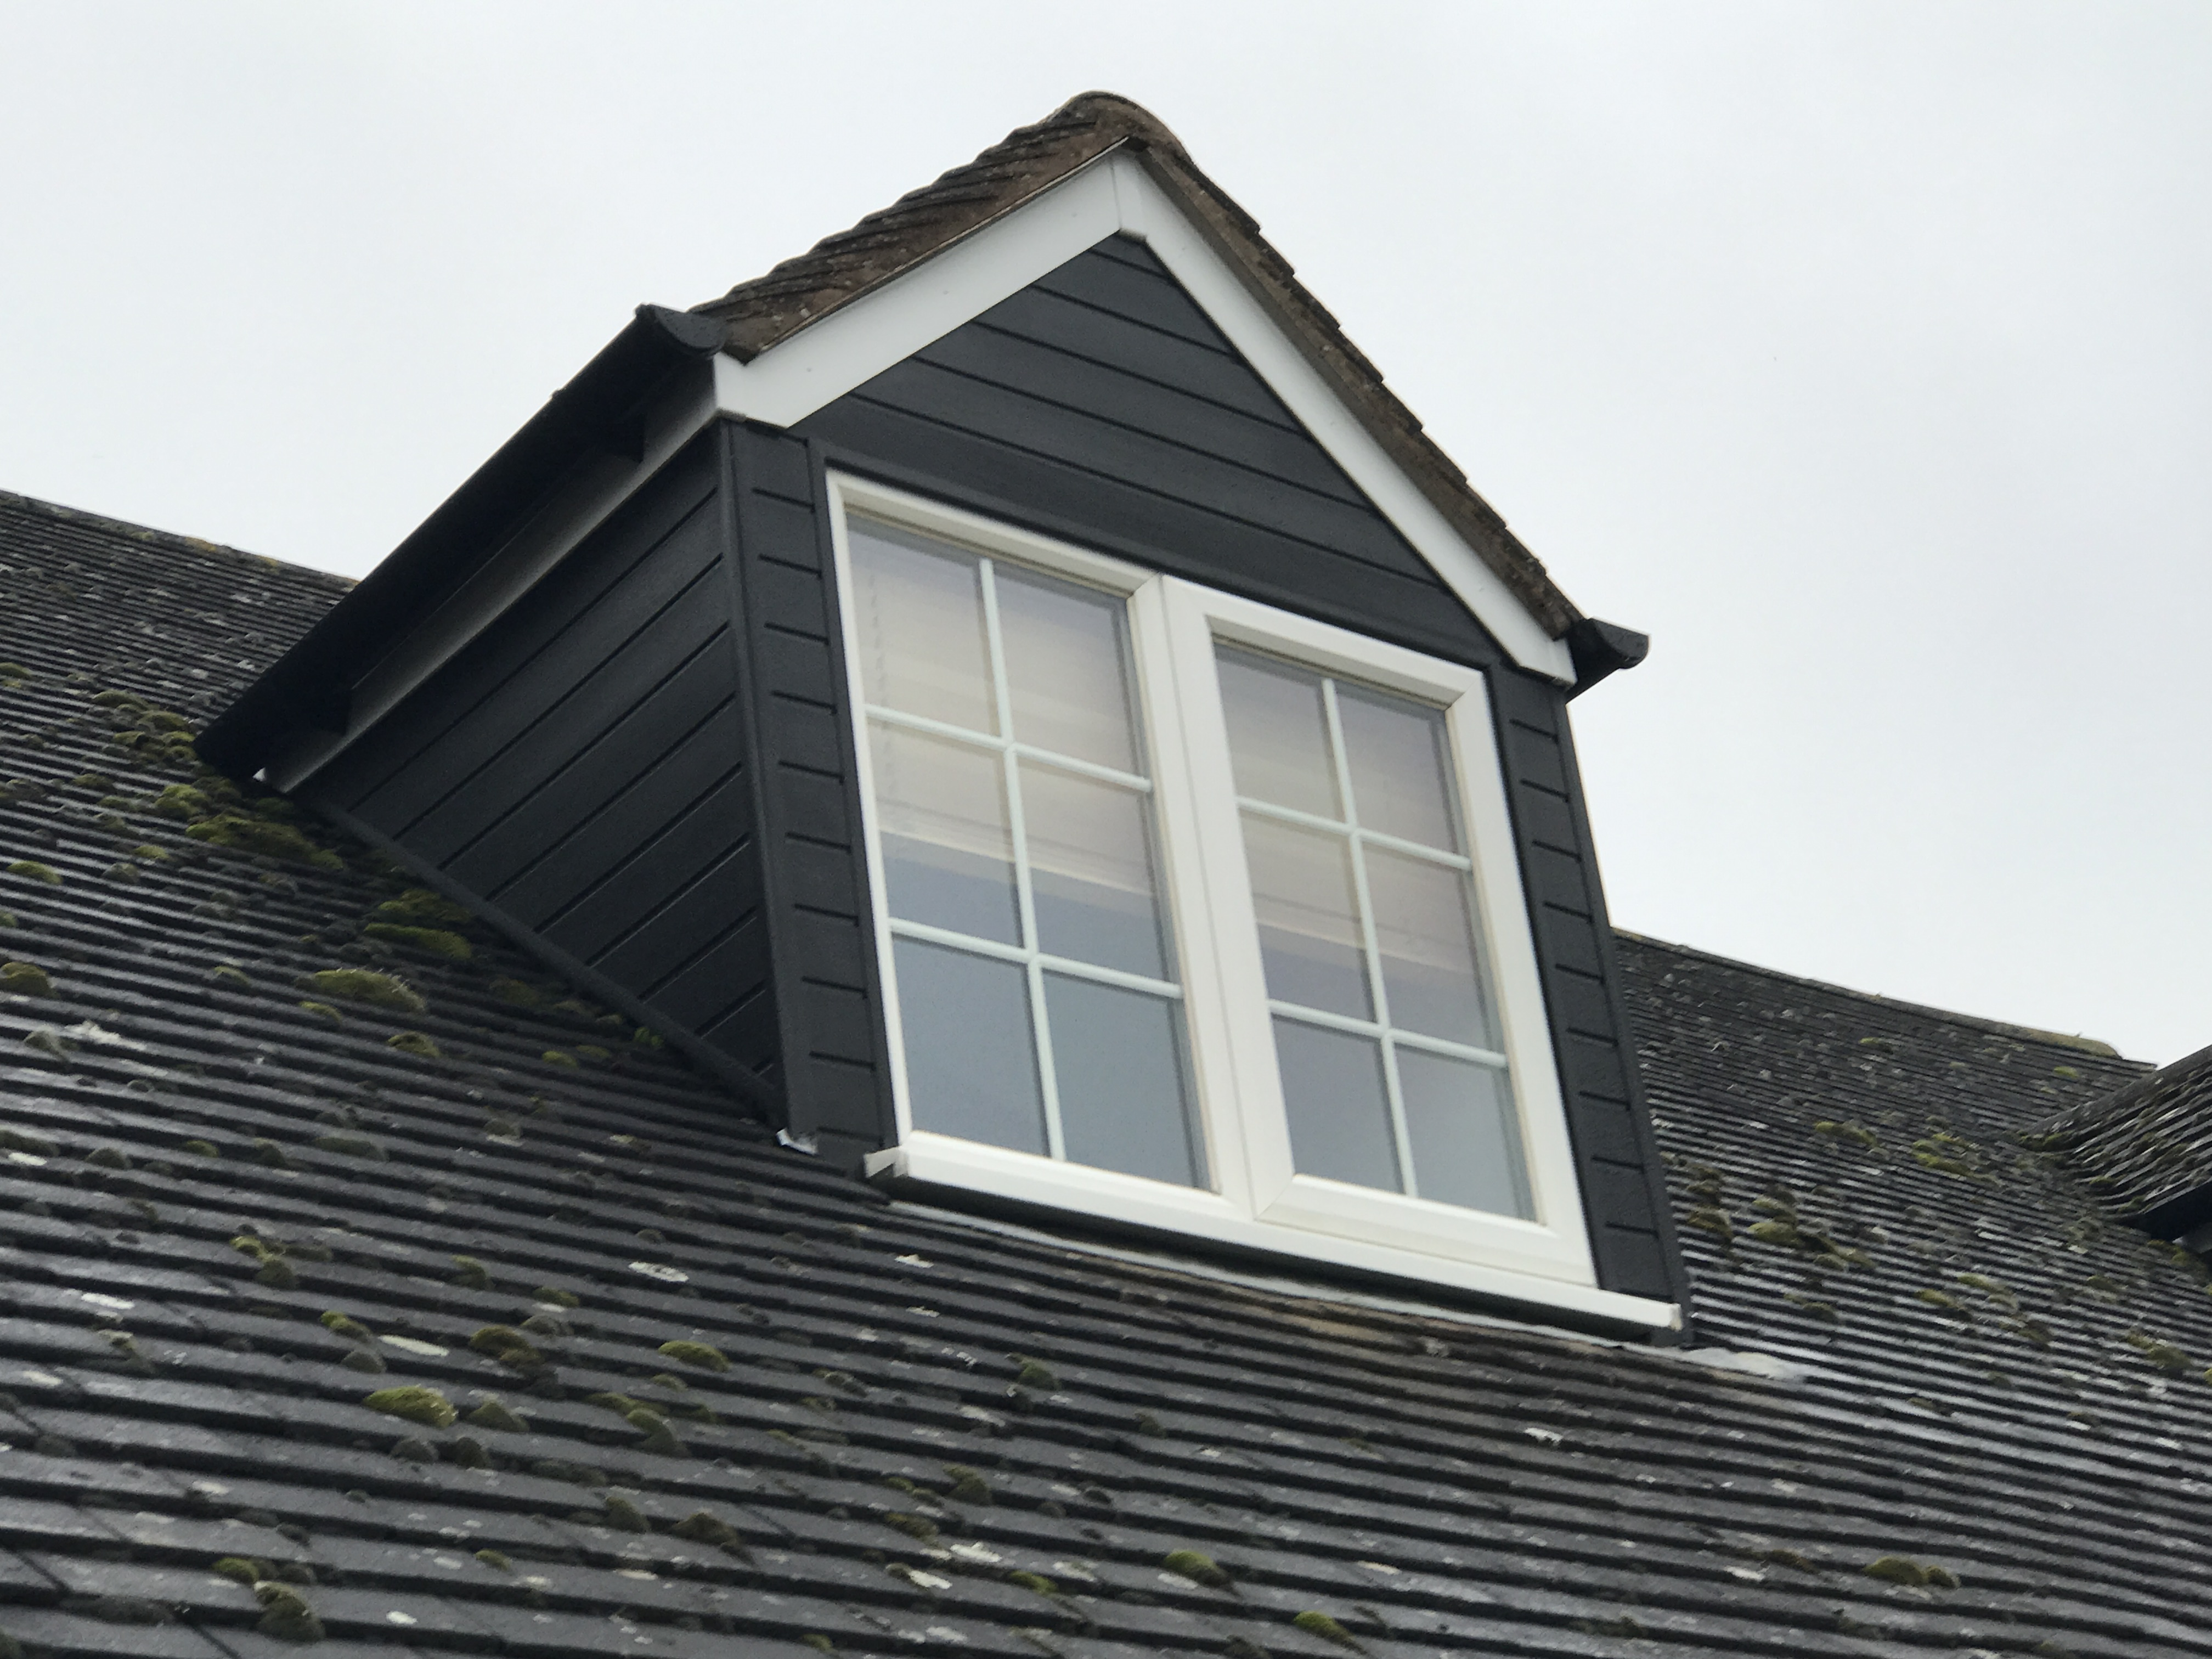 Mr And Mrs Armstrong Cladding Guttering And Soffit Work